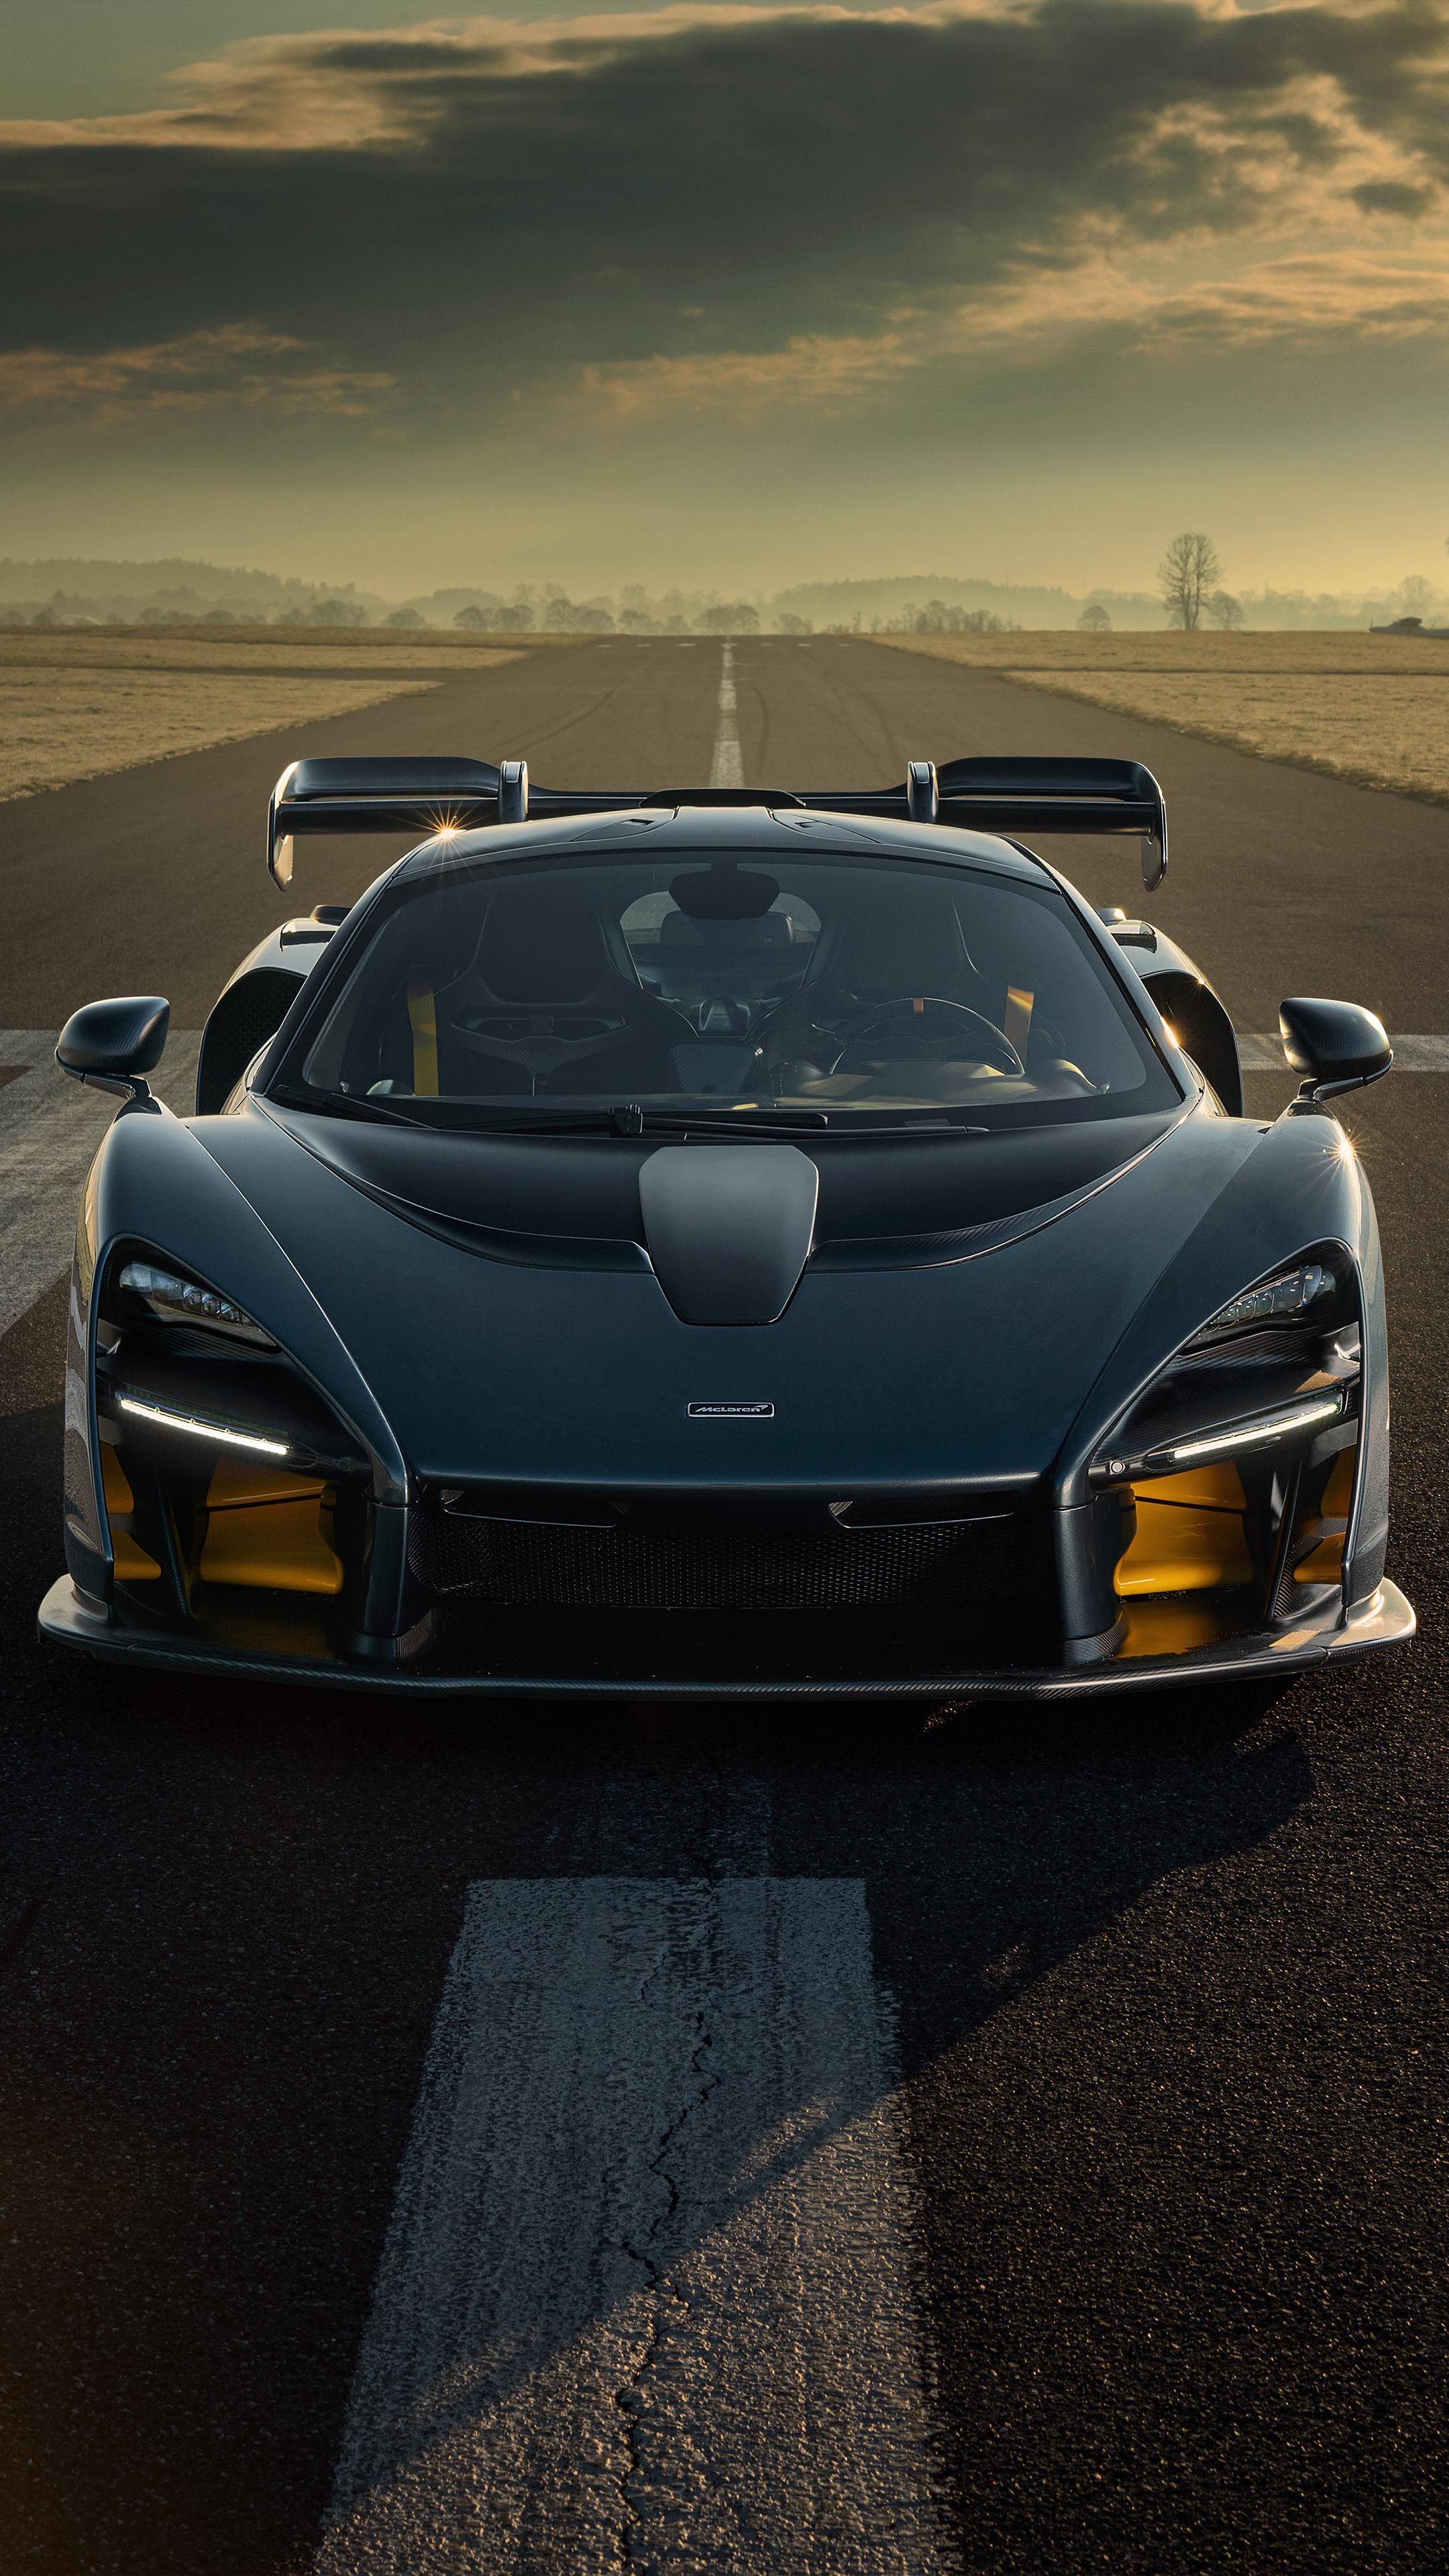 Images have the power to move your emotions like few things in life. Novitec Mclaren Senna 2020 4k Ultra Hd Mobile Wallpaper Car Wallpapers Sports Cars Luxury Super Cars